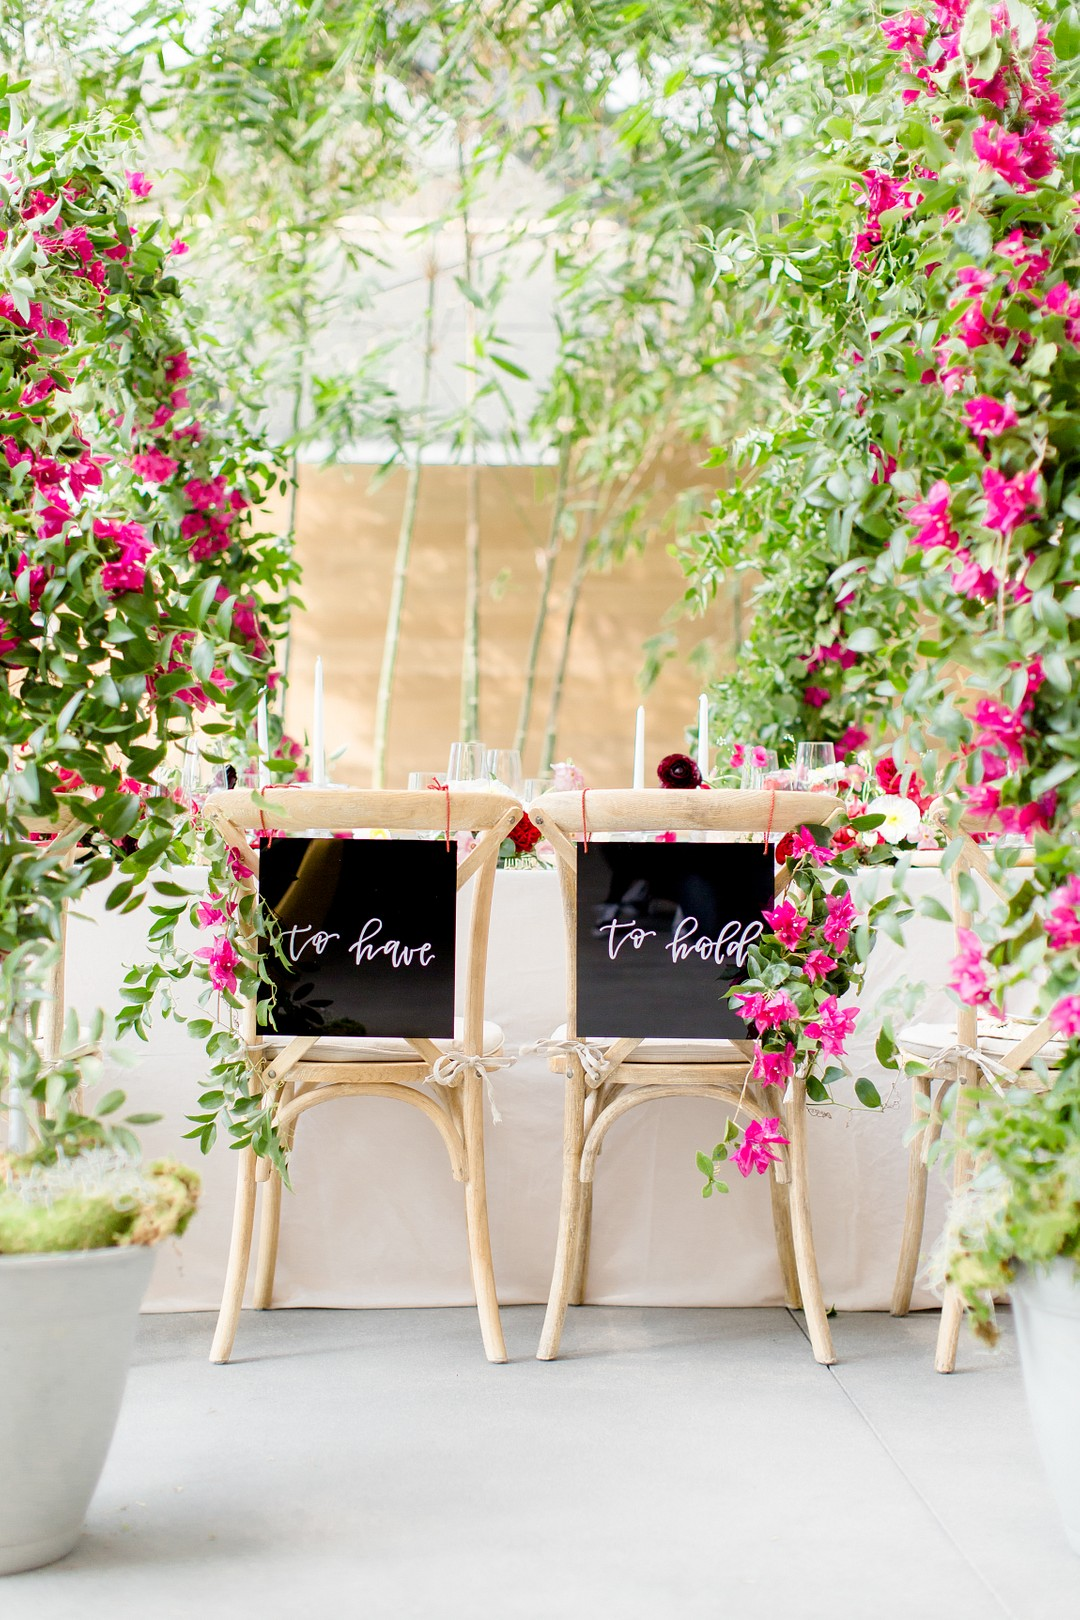 to have and to hold bride and groom seat surrounded by bougainvillea